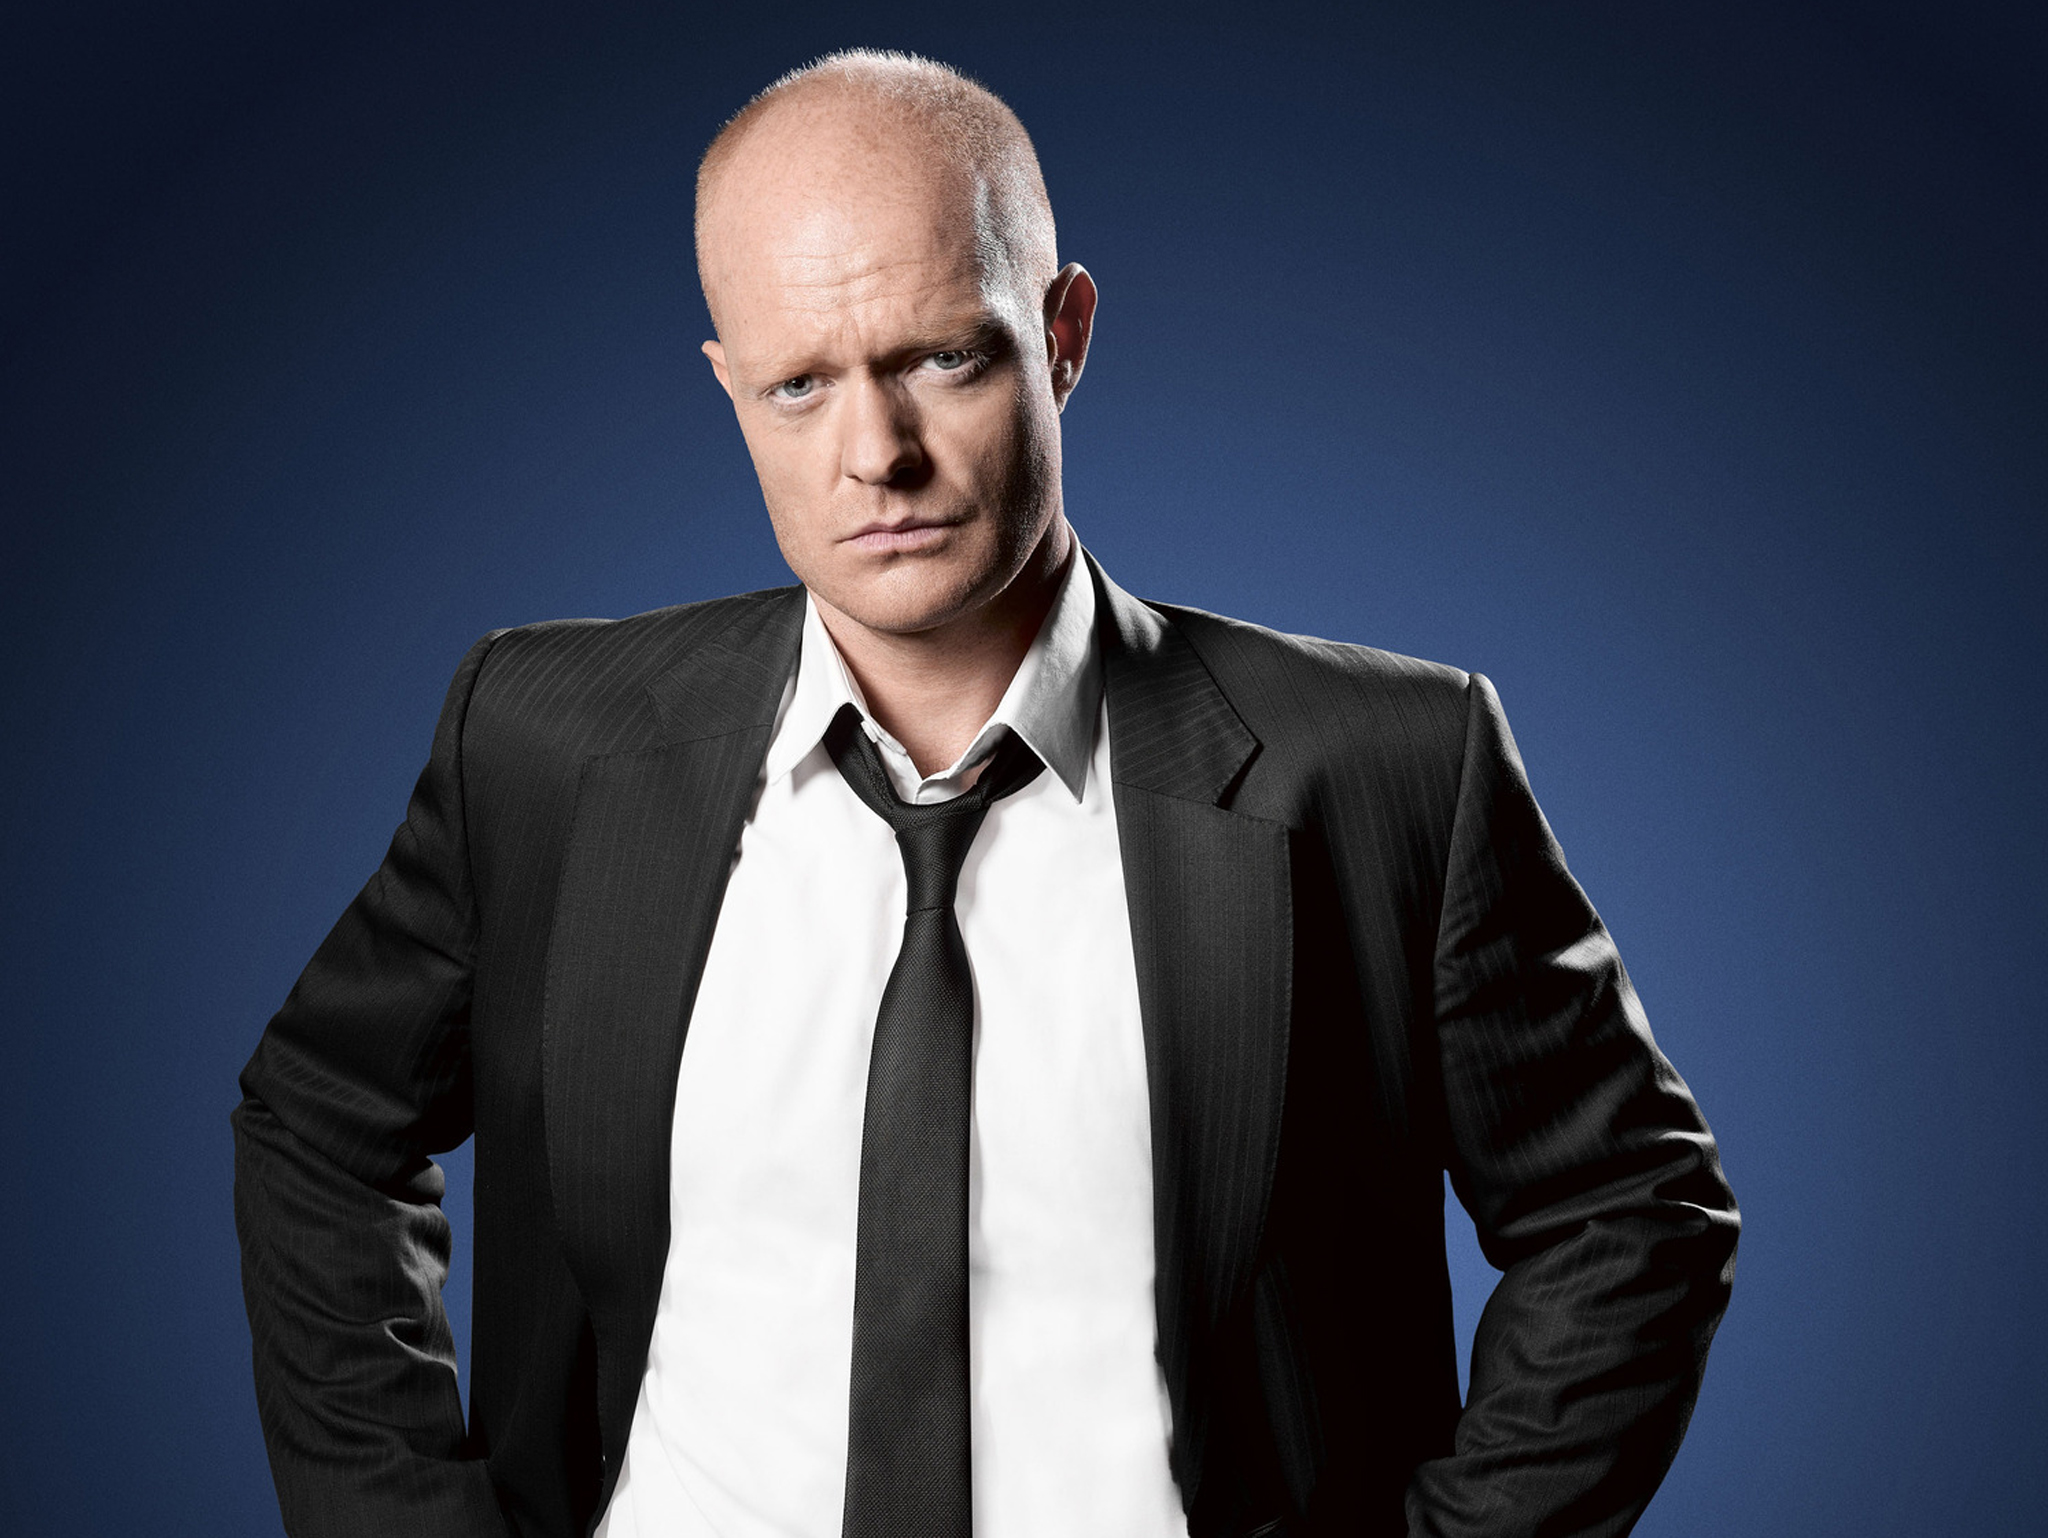 EastEnders spoiler interview: Jake Wood reveals all on Max Branning return and whether he's a changed man